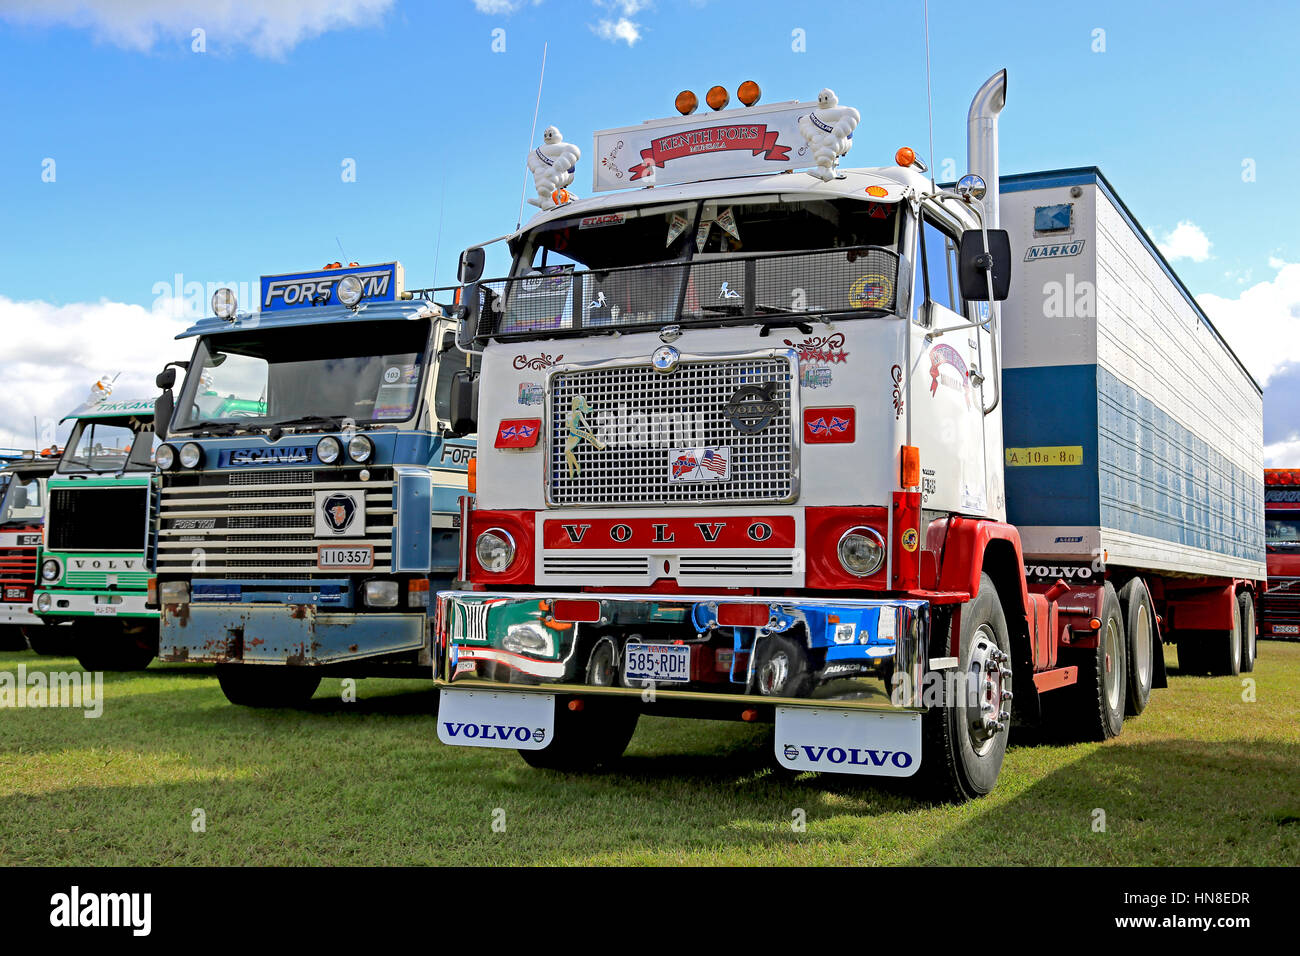 Volvo F88 Stock Photos & Volvo F88 Stock Images - Alamy